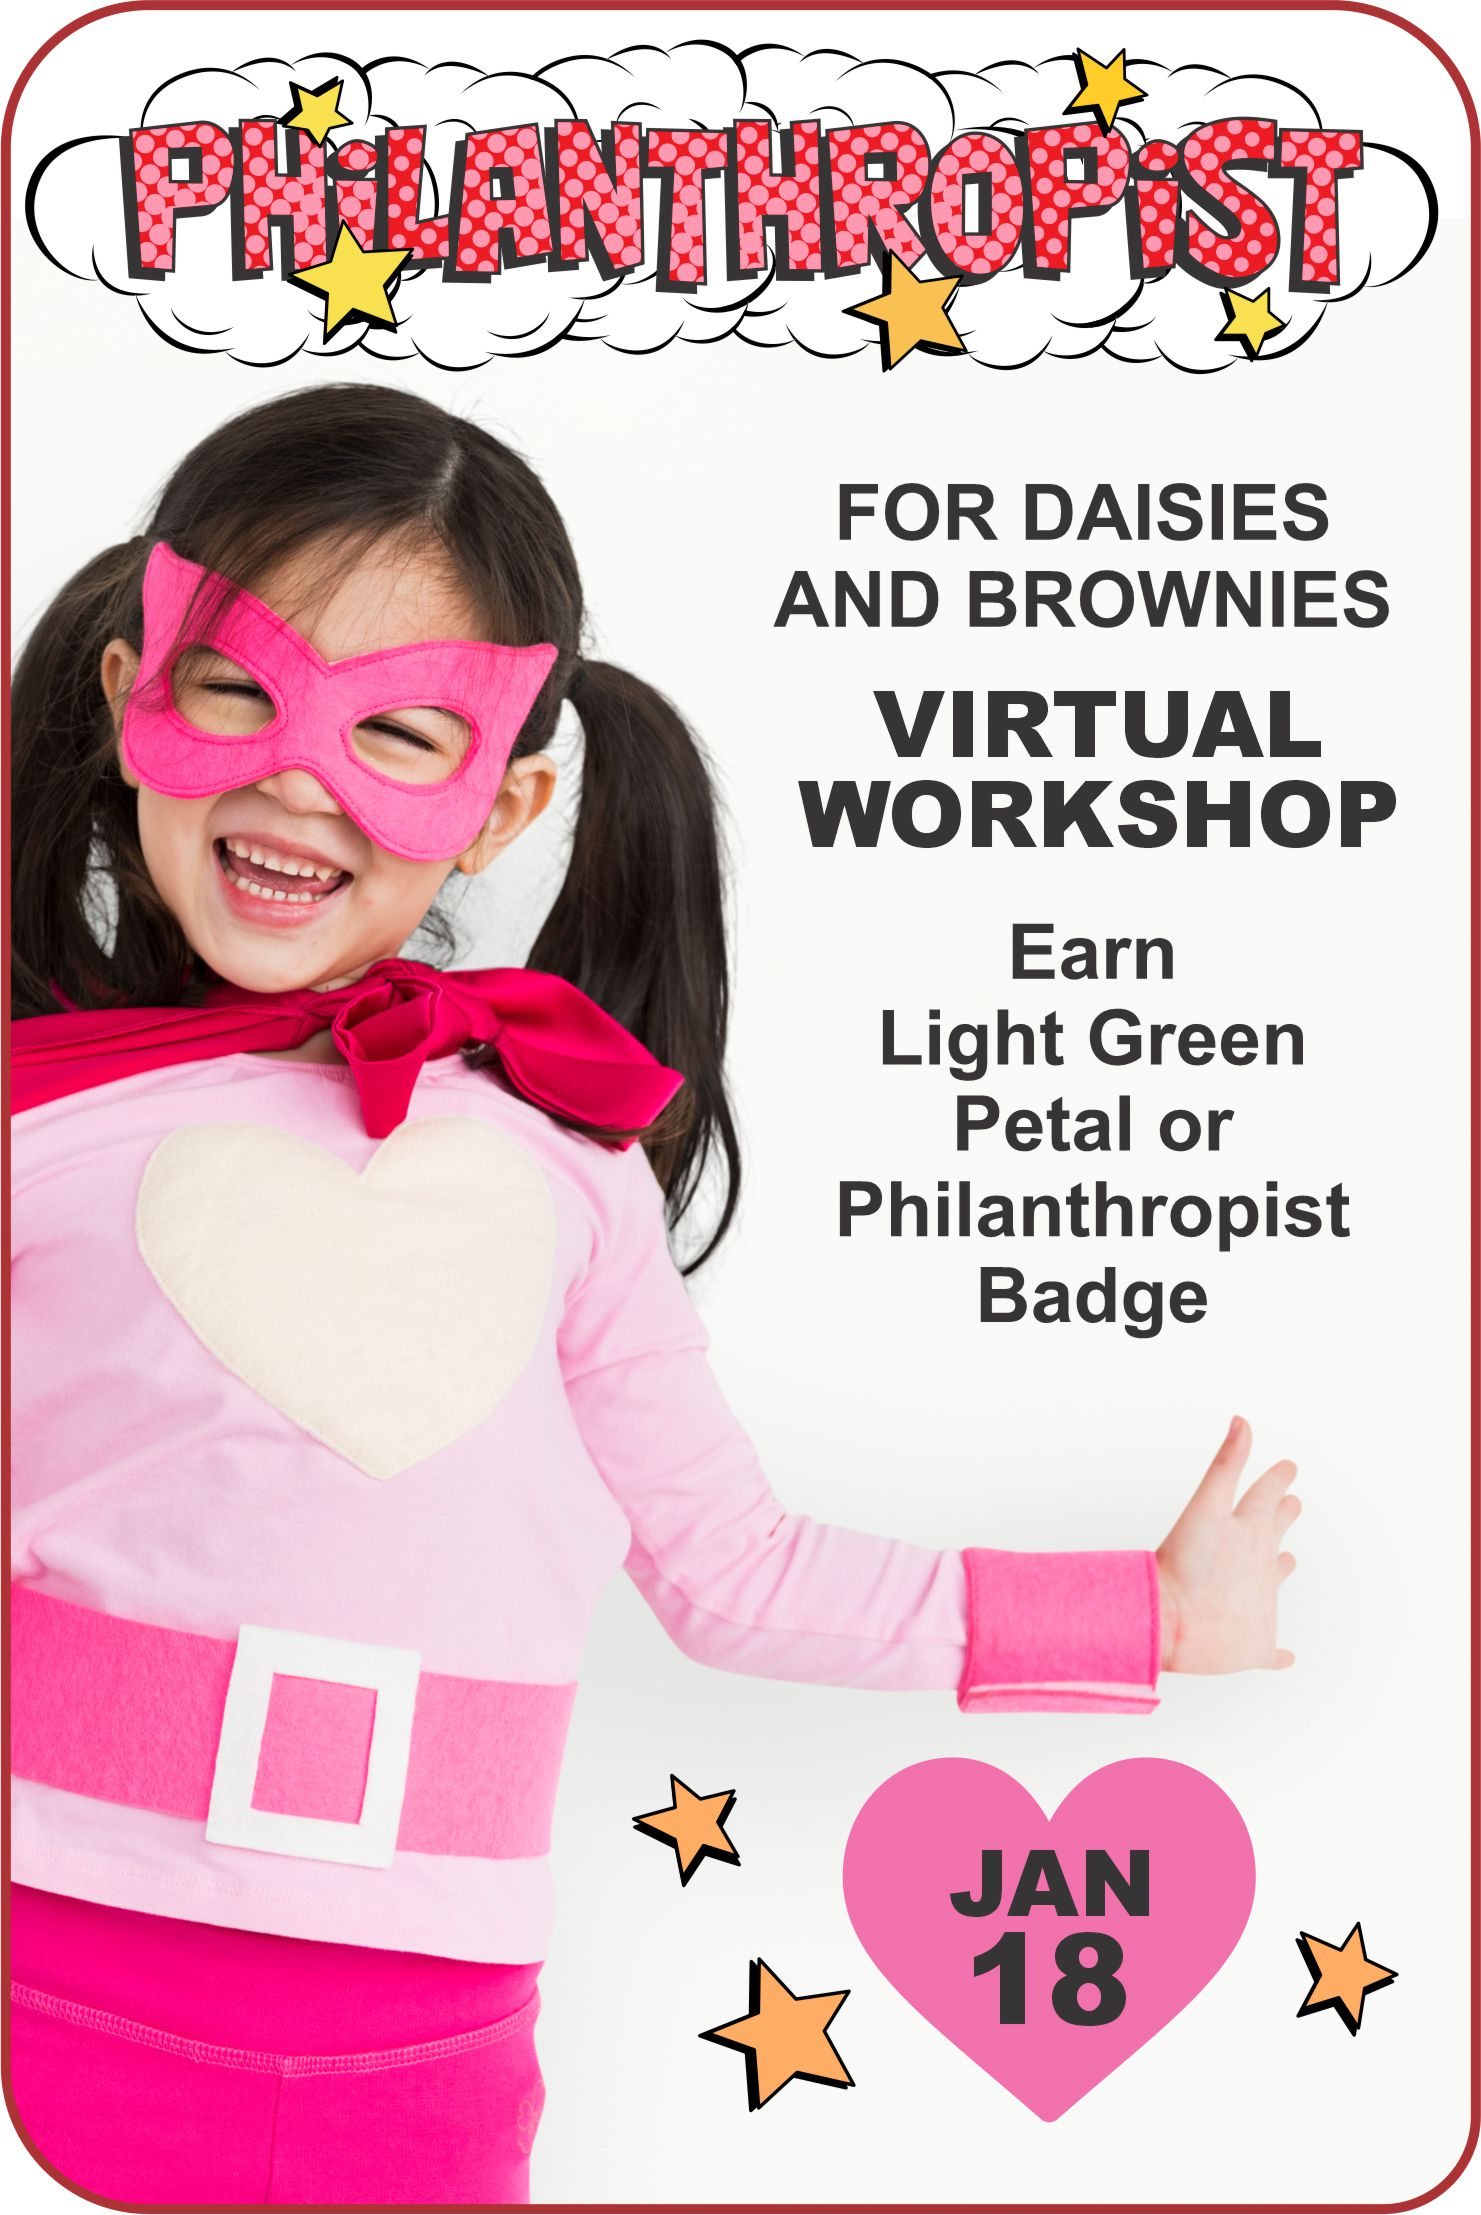 Come dressed like a superhero and join Superheroes Nichole and Charity for our Daisy and Brownie Philanthropist Workshop on Zoom! #makingfriends #philanthropist #virtualclass #onlineworkshop #girlscoutworkshop #daisy #brownie #gsworkshop #girlscouts #funpatch via @gsleader411